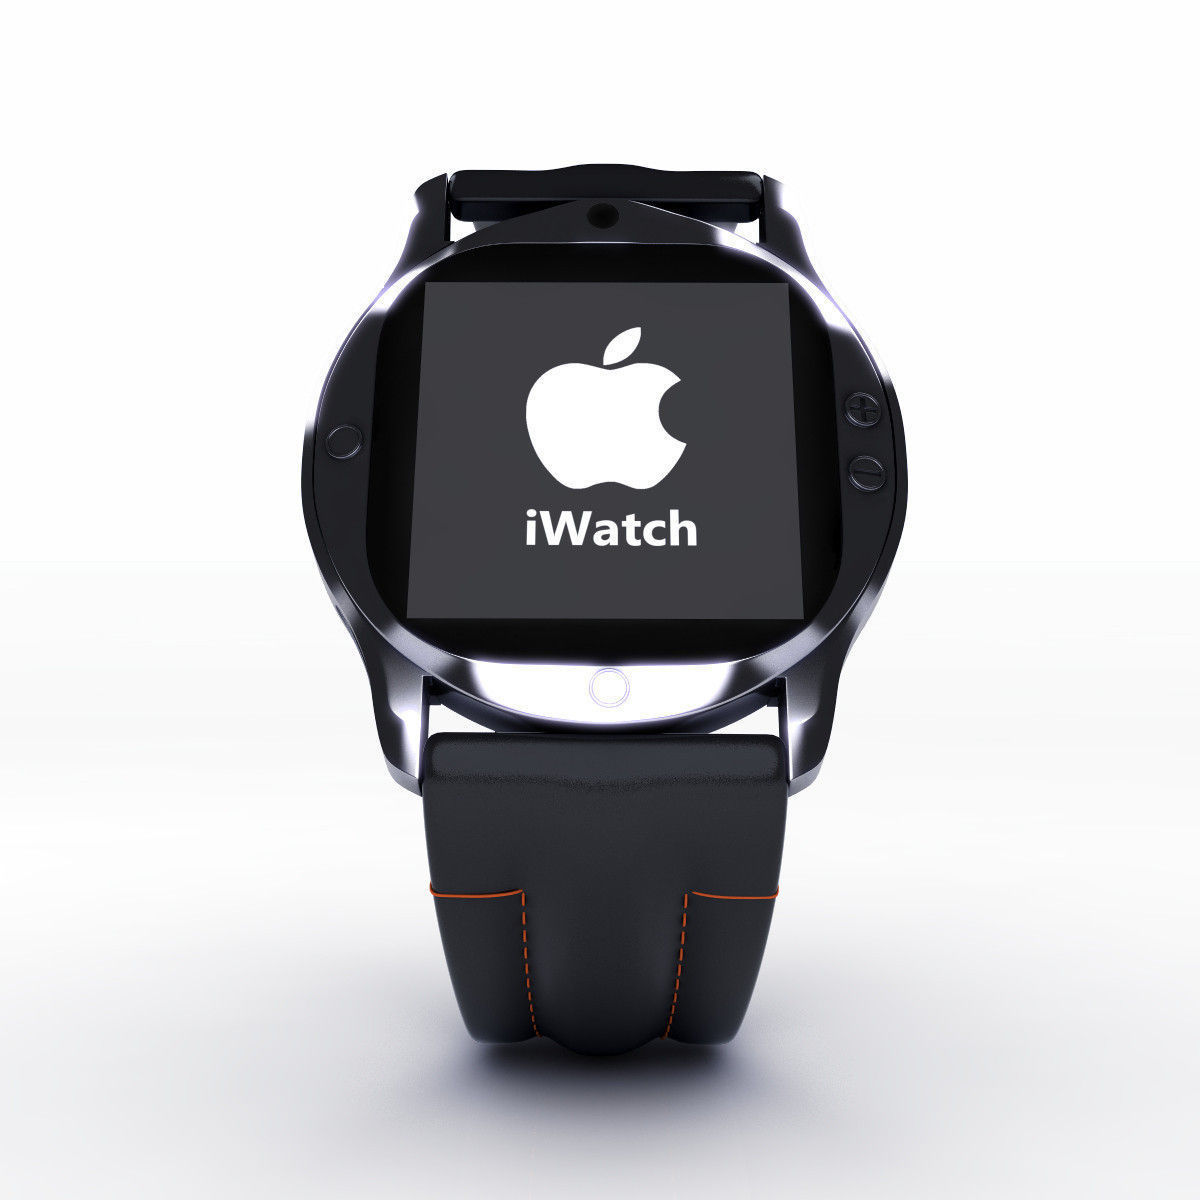 Iwatch 3d Model Max Obj 3ds Fbx Ma Mb Cgtrader Com